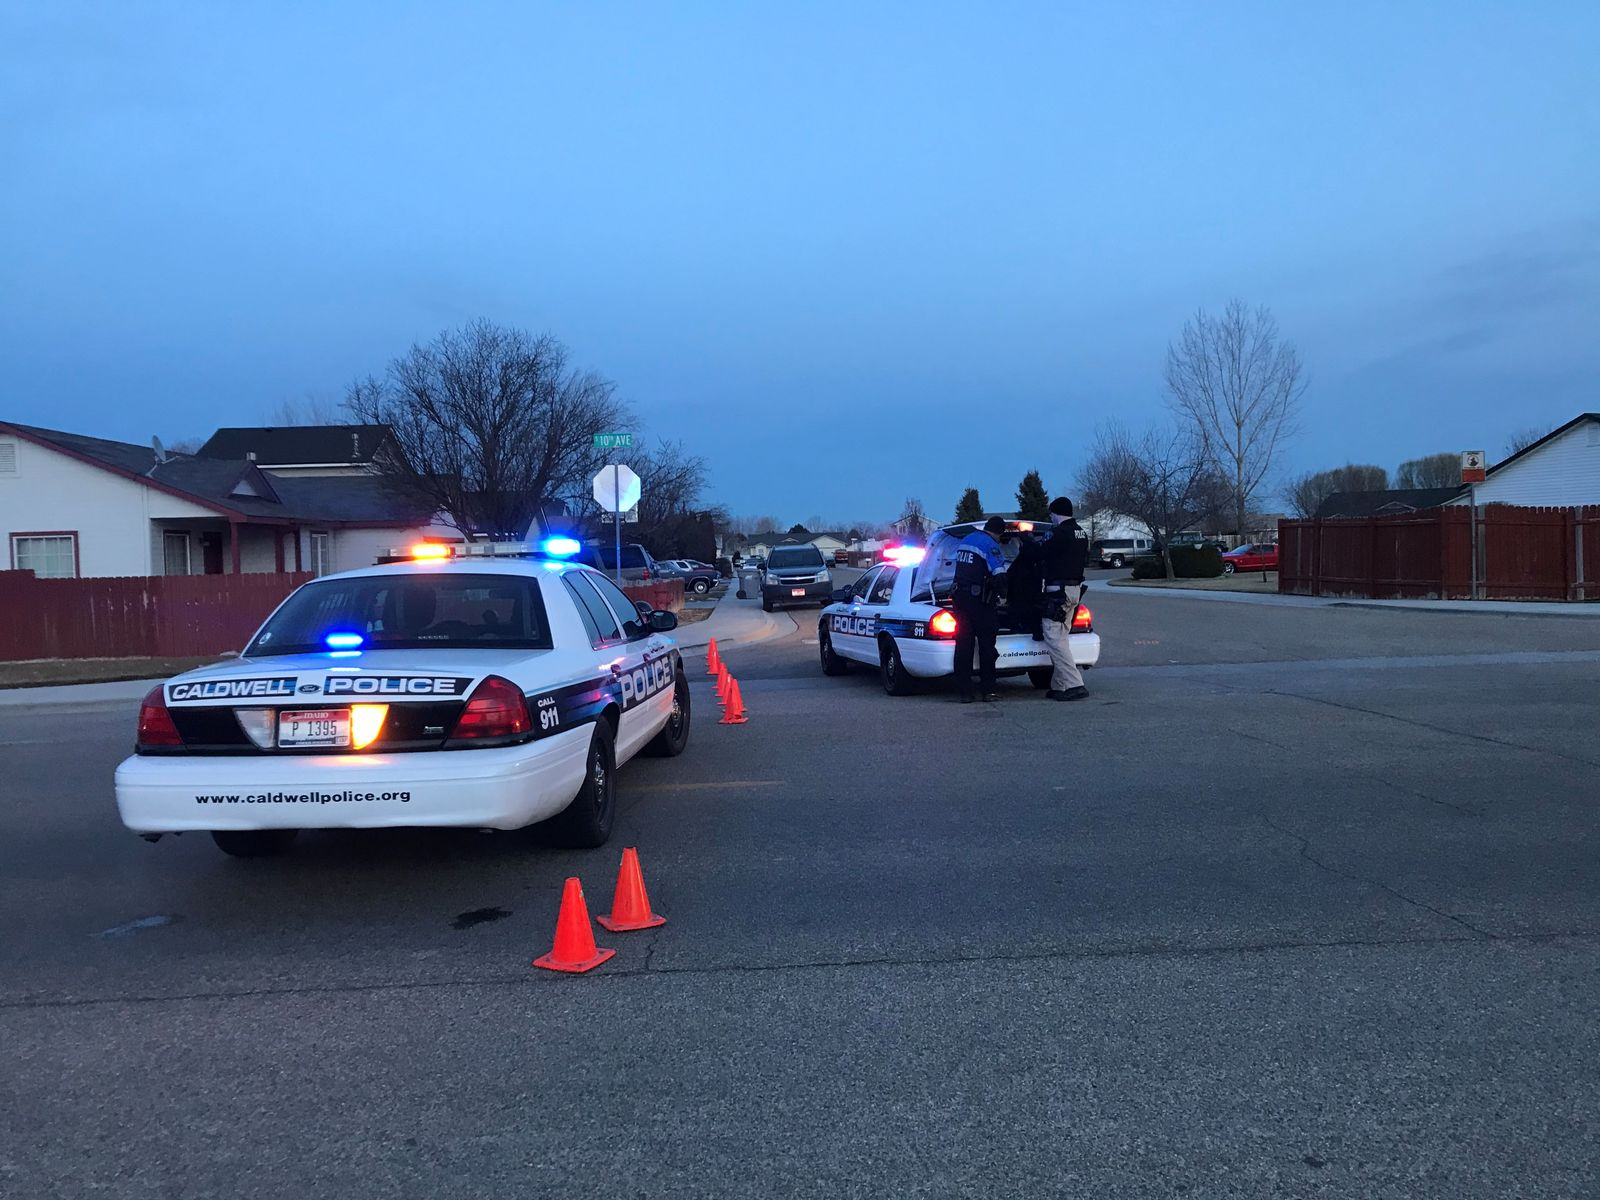 2 dead, 2 injured and 1 officer hurt after shots fired at Caldwell elderly apartments. (KBOI News Staff)